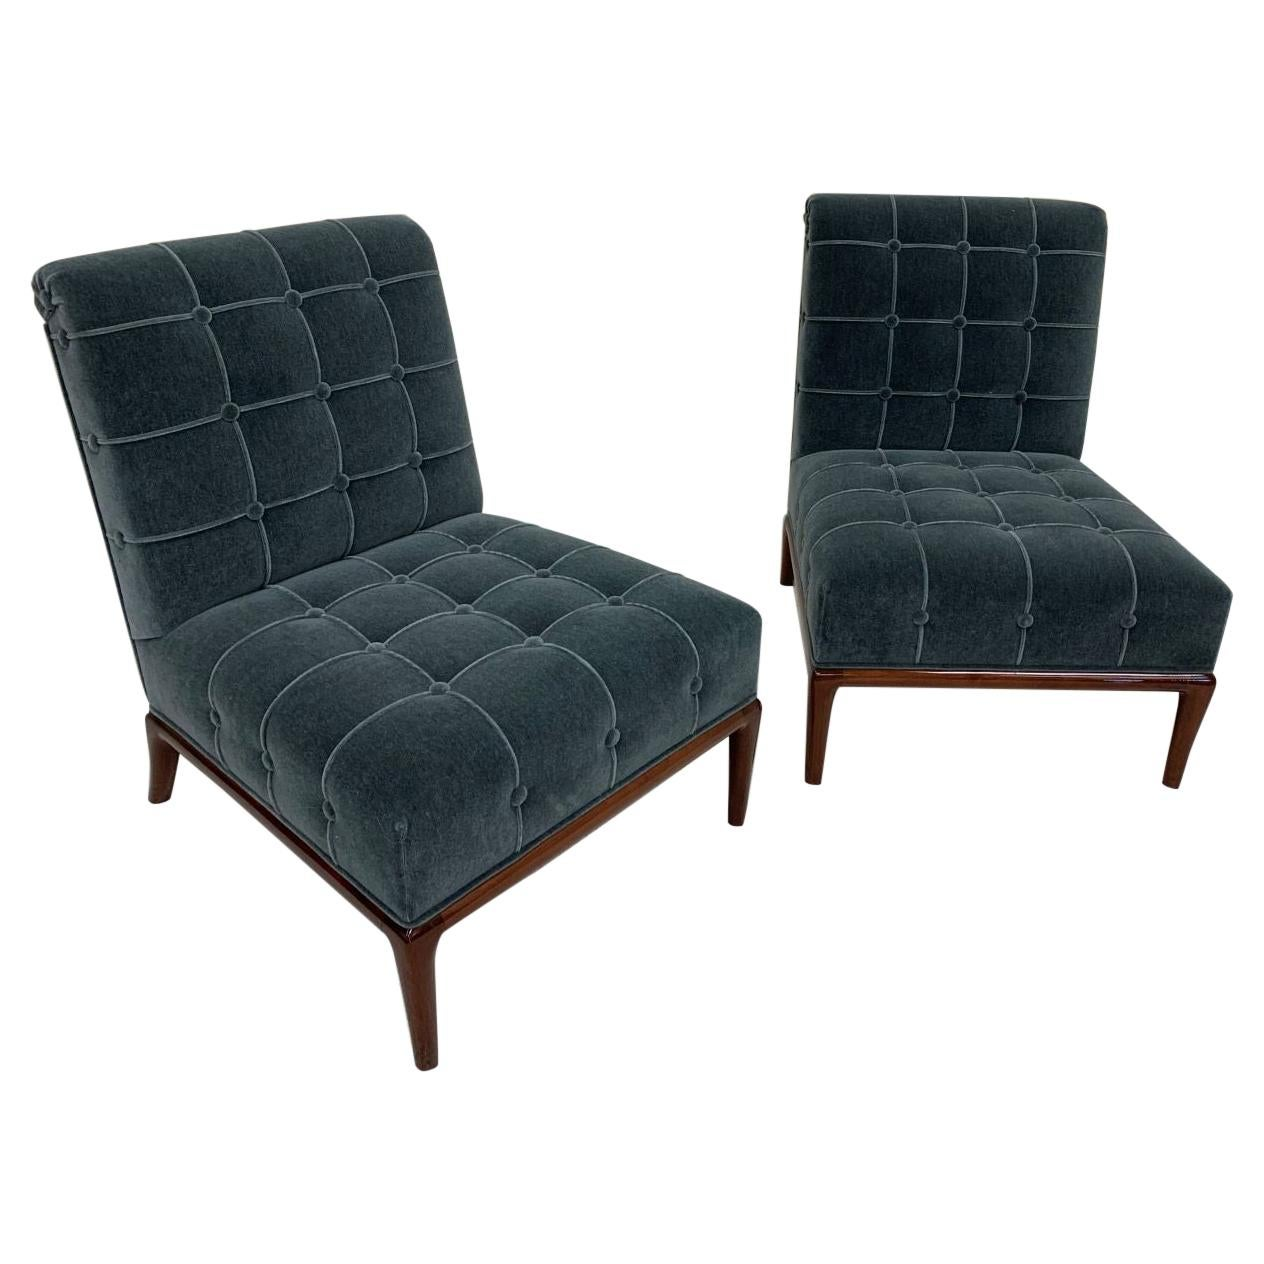 Pair of Mid Century Modern Chairs in the Style of Robsjohn-Gibbings in  Mohair